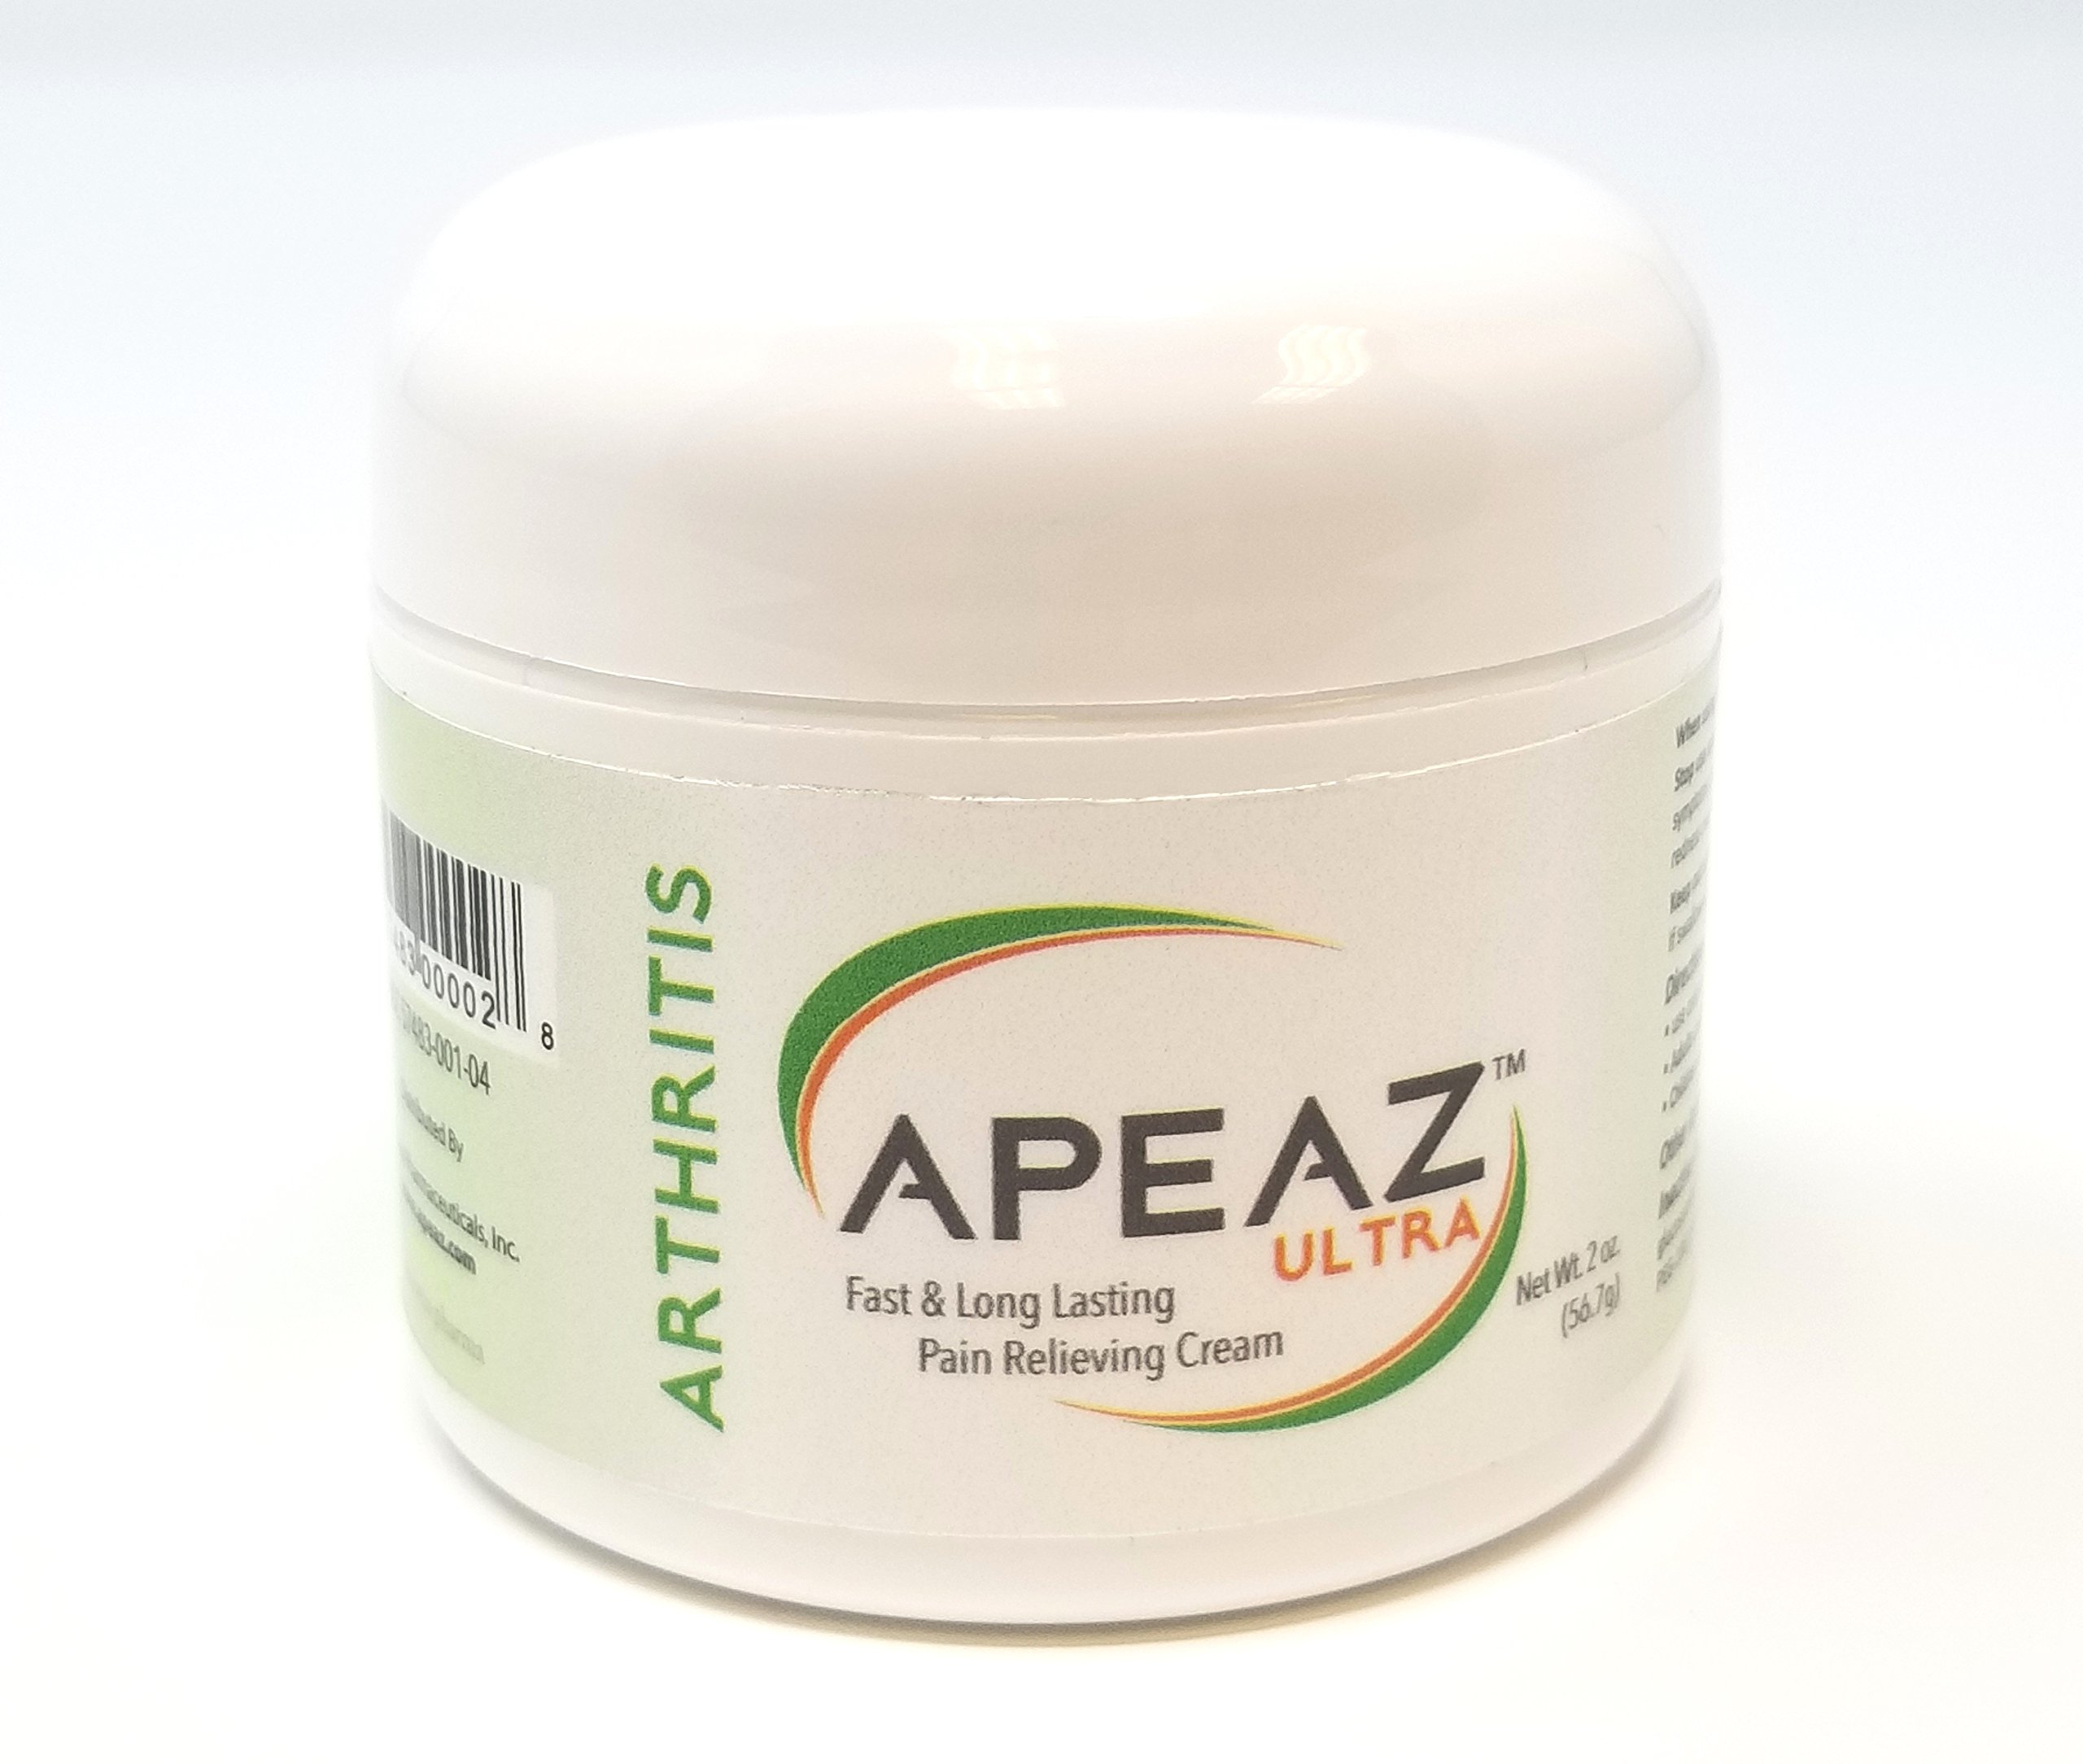 Apeaz ULTRA   Fast and Long lasting Arthritis Pain Relieving Cream - 2oz tub